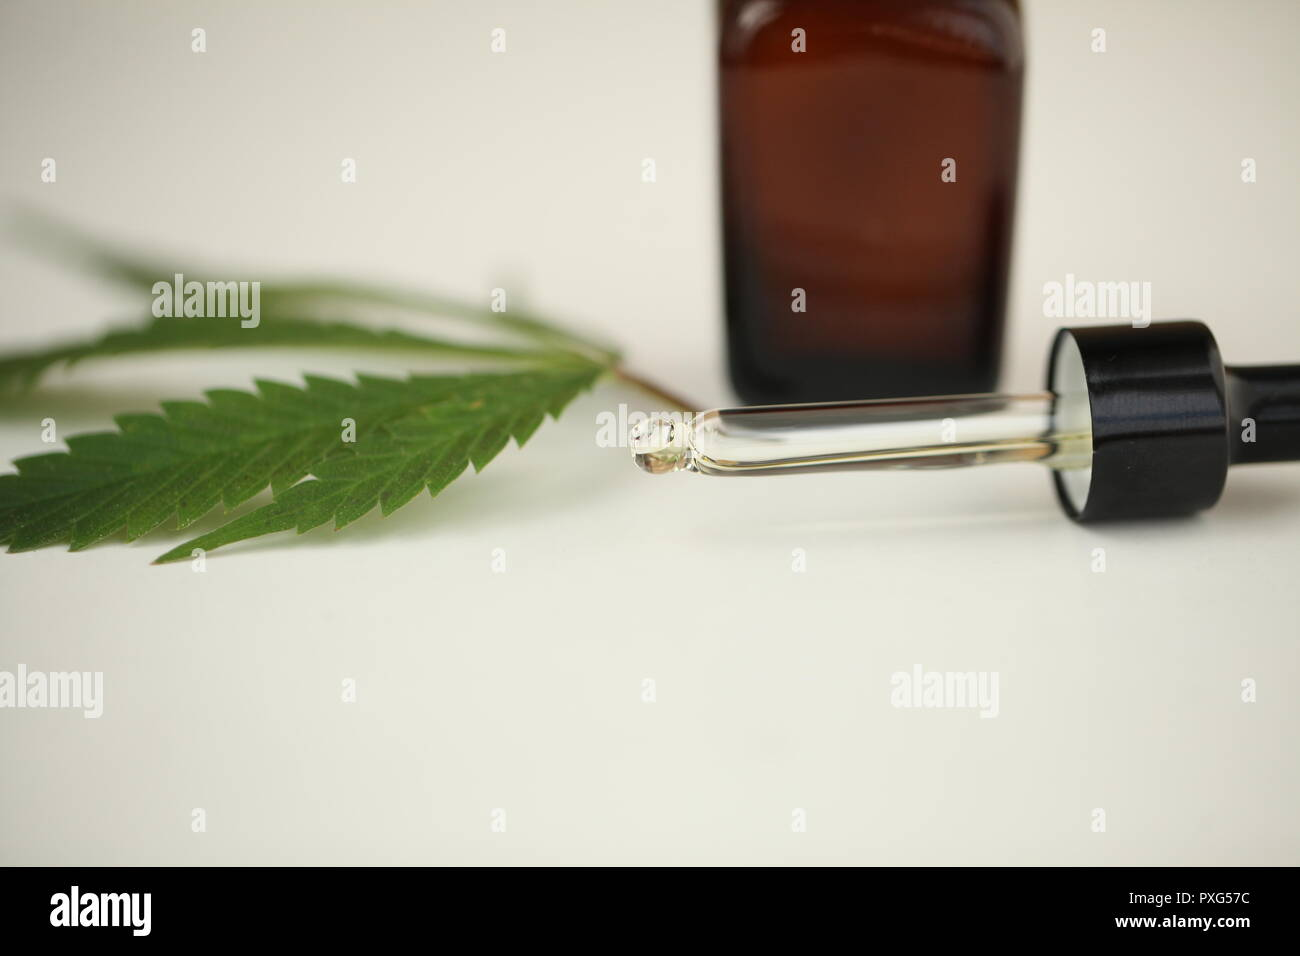 oil hemp products medical cannabis Stock Photo